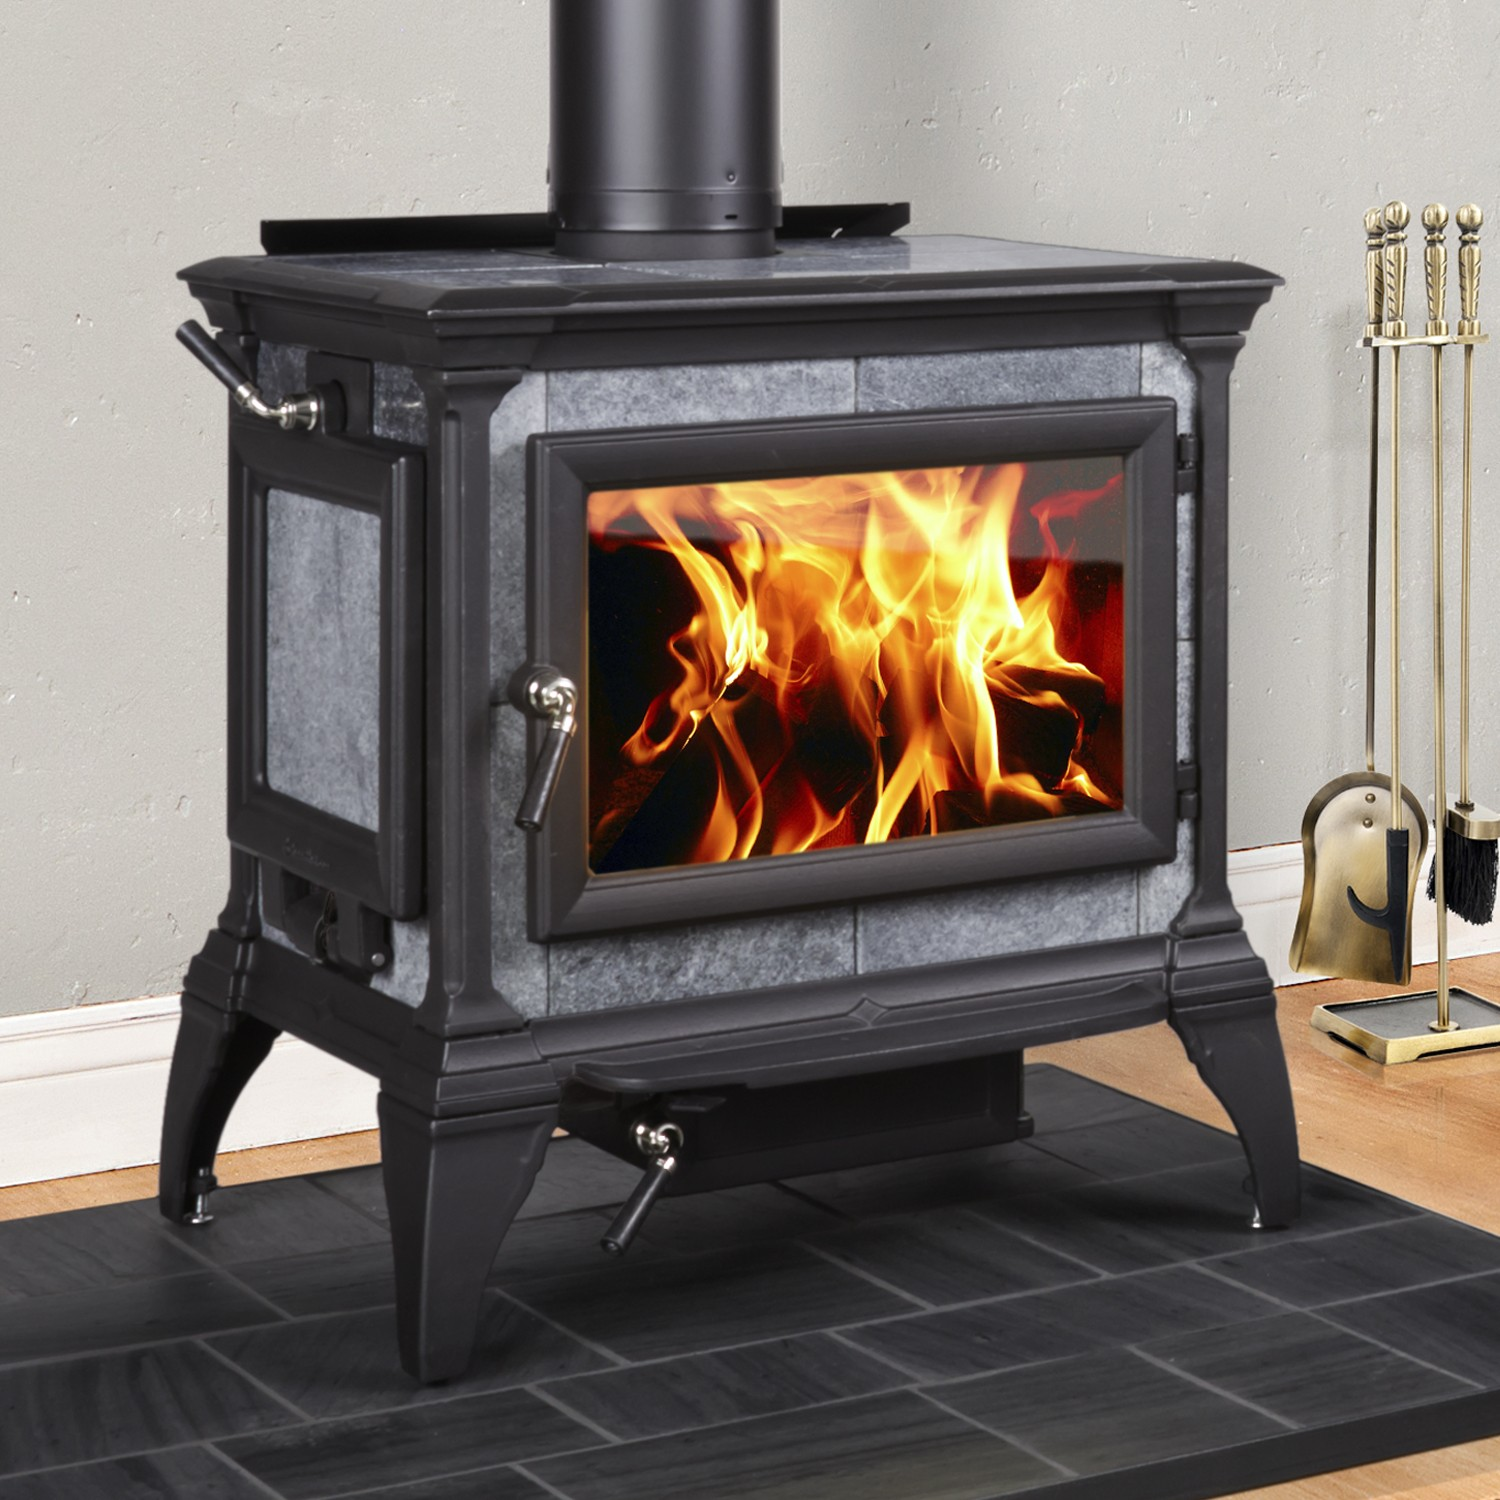 Soapstone Wood Stoves - Soapstone Wood Stoves €� Fleet-Plummer: Gracious Living, Southern Style